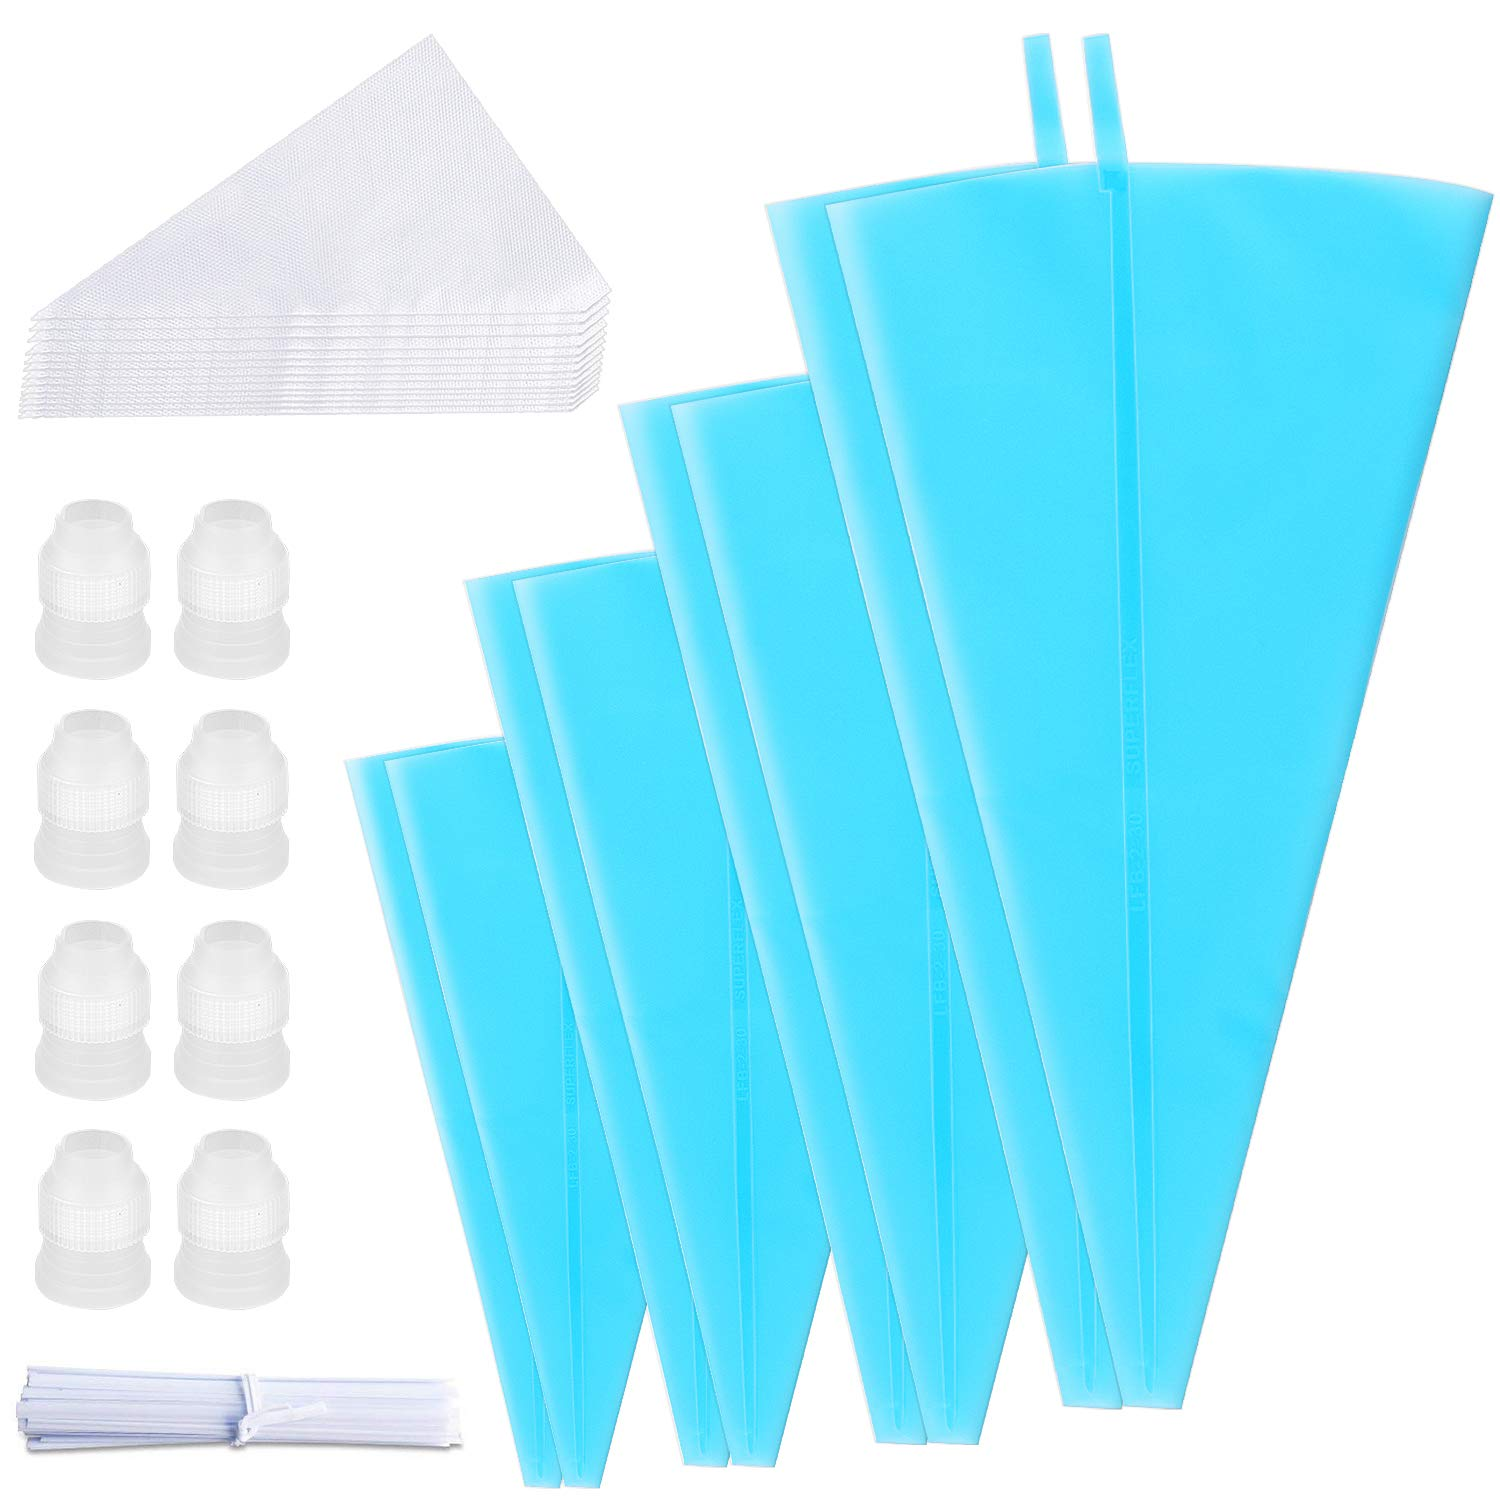 PEMOTech Pastry Bags, [Set of 66] 4 Sizes(12''/ 14''/ 16''/ 18'')- 8 Pack Reusable Piping Bags FDA Approved, with 30 Piping Bags Ties 20 Disposable Pastry Bags and 8 Couplers by PEMOTech (Image #1)